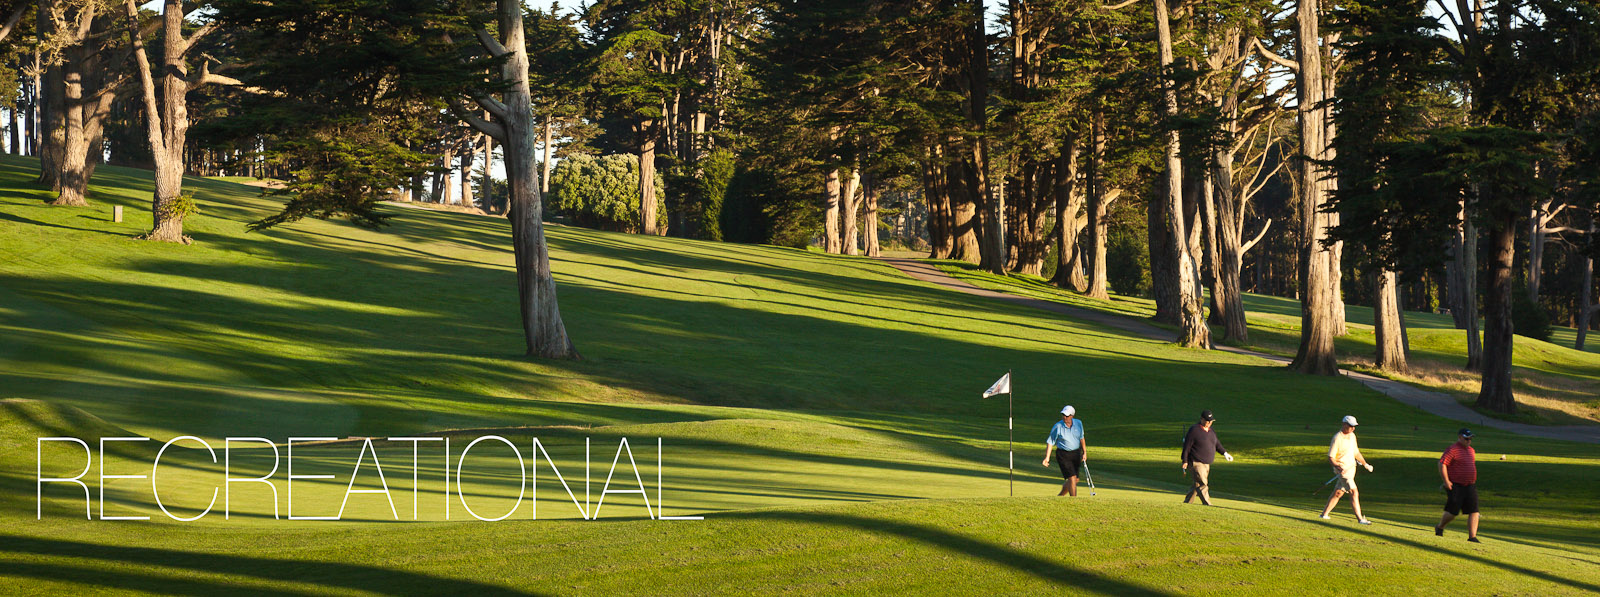 Golfers walking off the green in the late afternoon sun at the Presidio Golf Course, San Francisco, CA. Photo © 2011 Jay Graham, all rights reserved